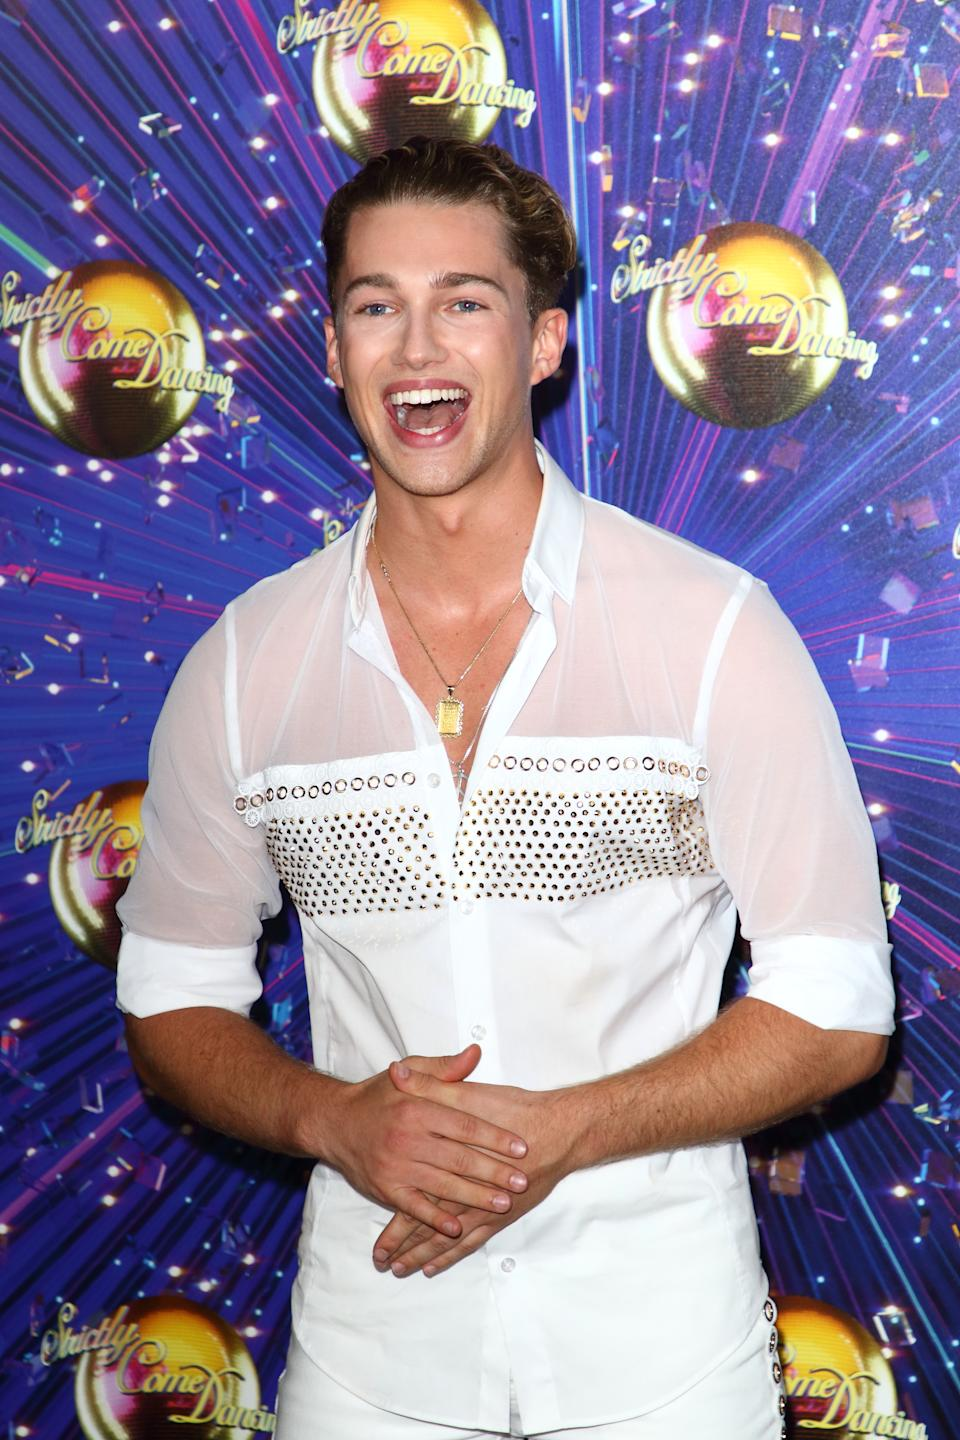 LONDON, UNITED KINGDOM - 2019/08/26: AJ Pritchard at the Strictly Come Dancing Launch at BBC Broadcasting House in London. (Photo by Keith Mayhew/SOPA Images/LightRocket via Getty Images)